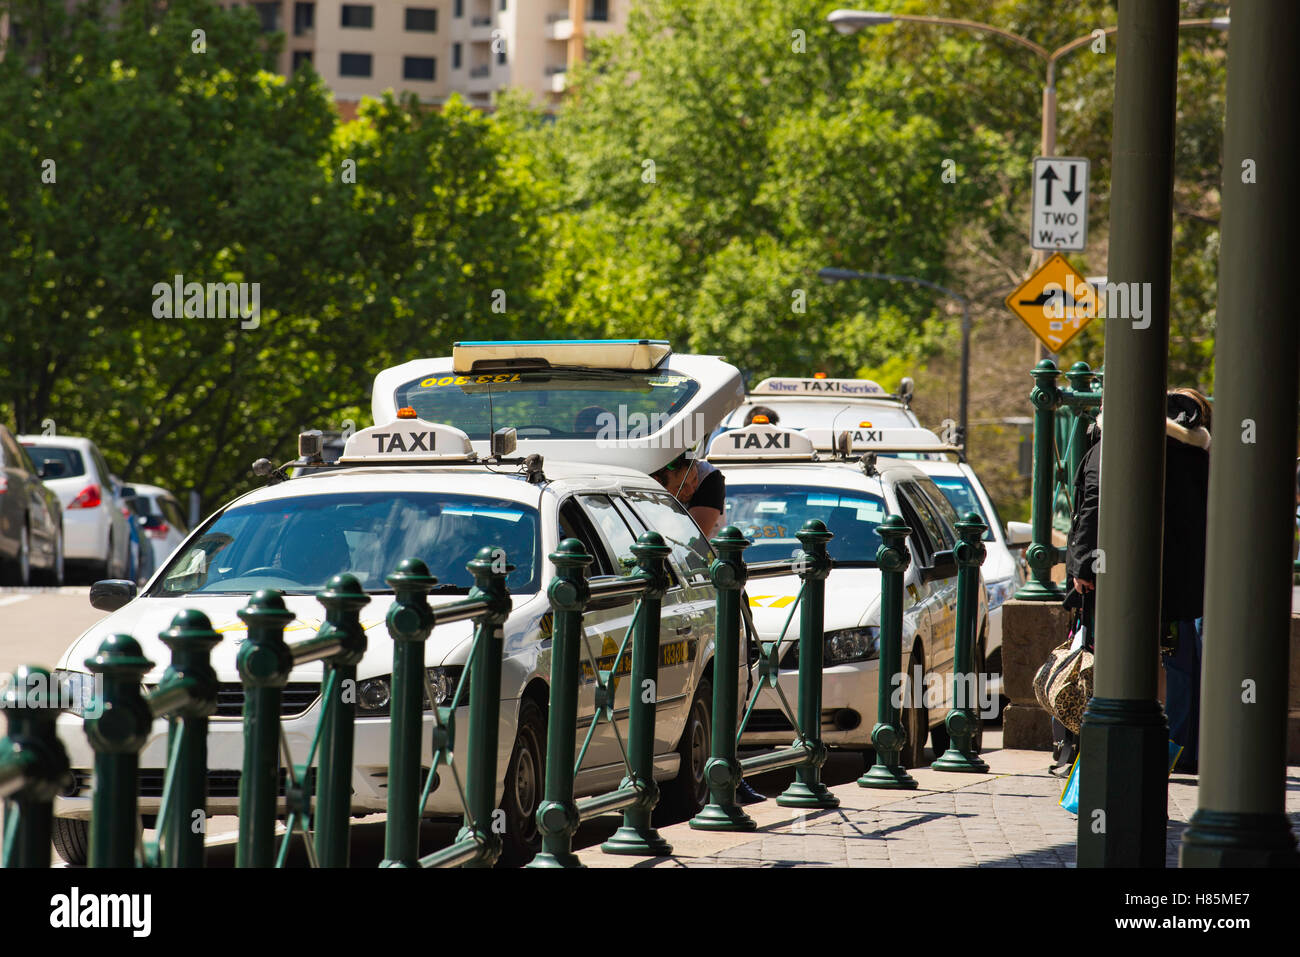 Taxi cabs standing in a rank waiting for work at Sydney's Central Railway Station - Stock Image